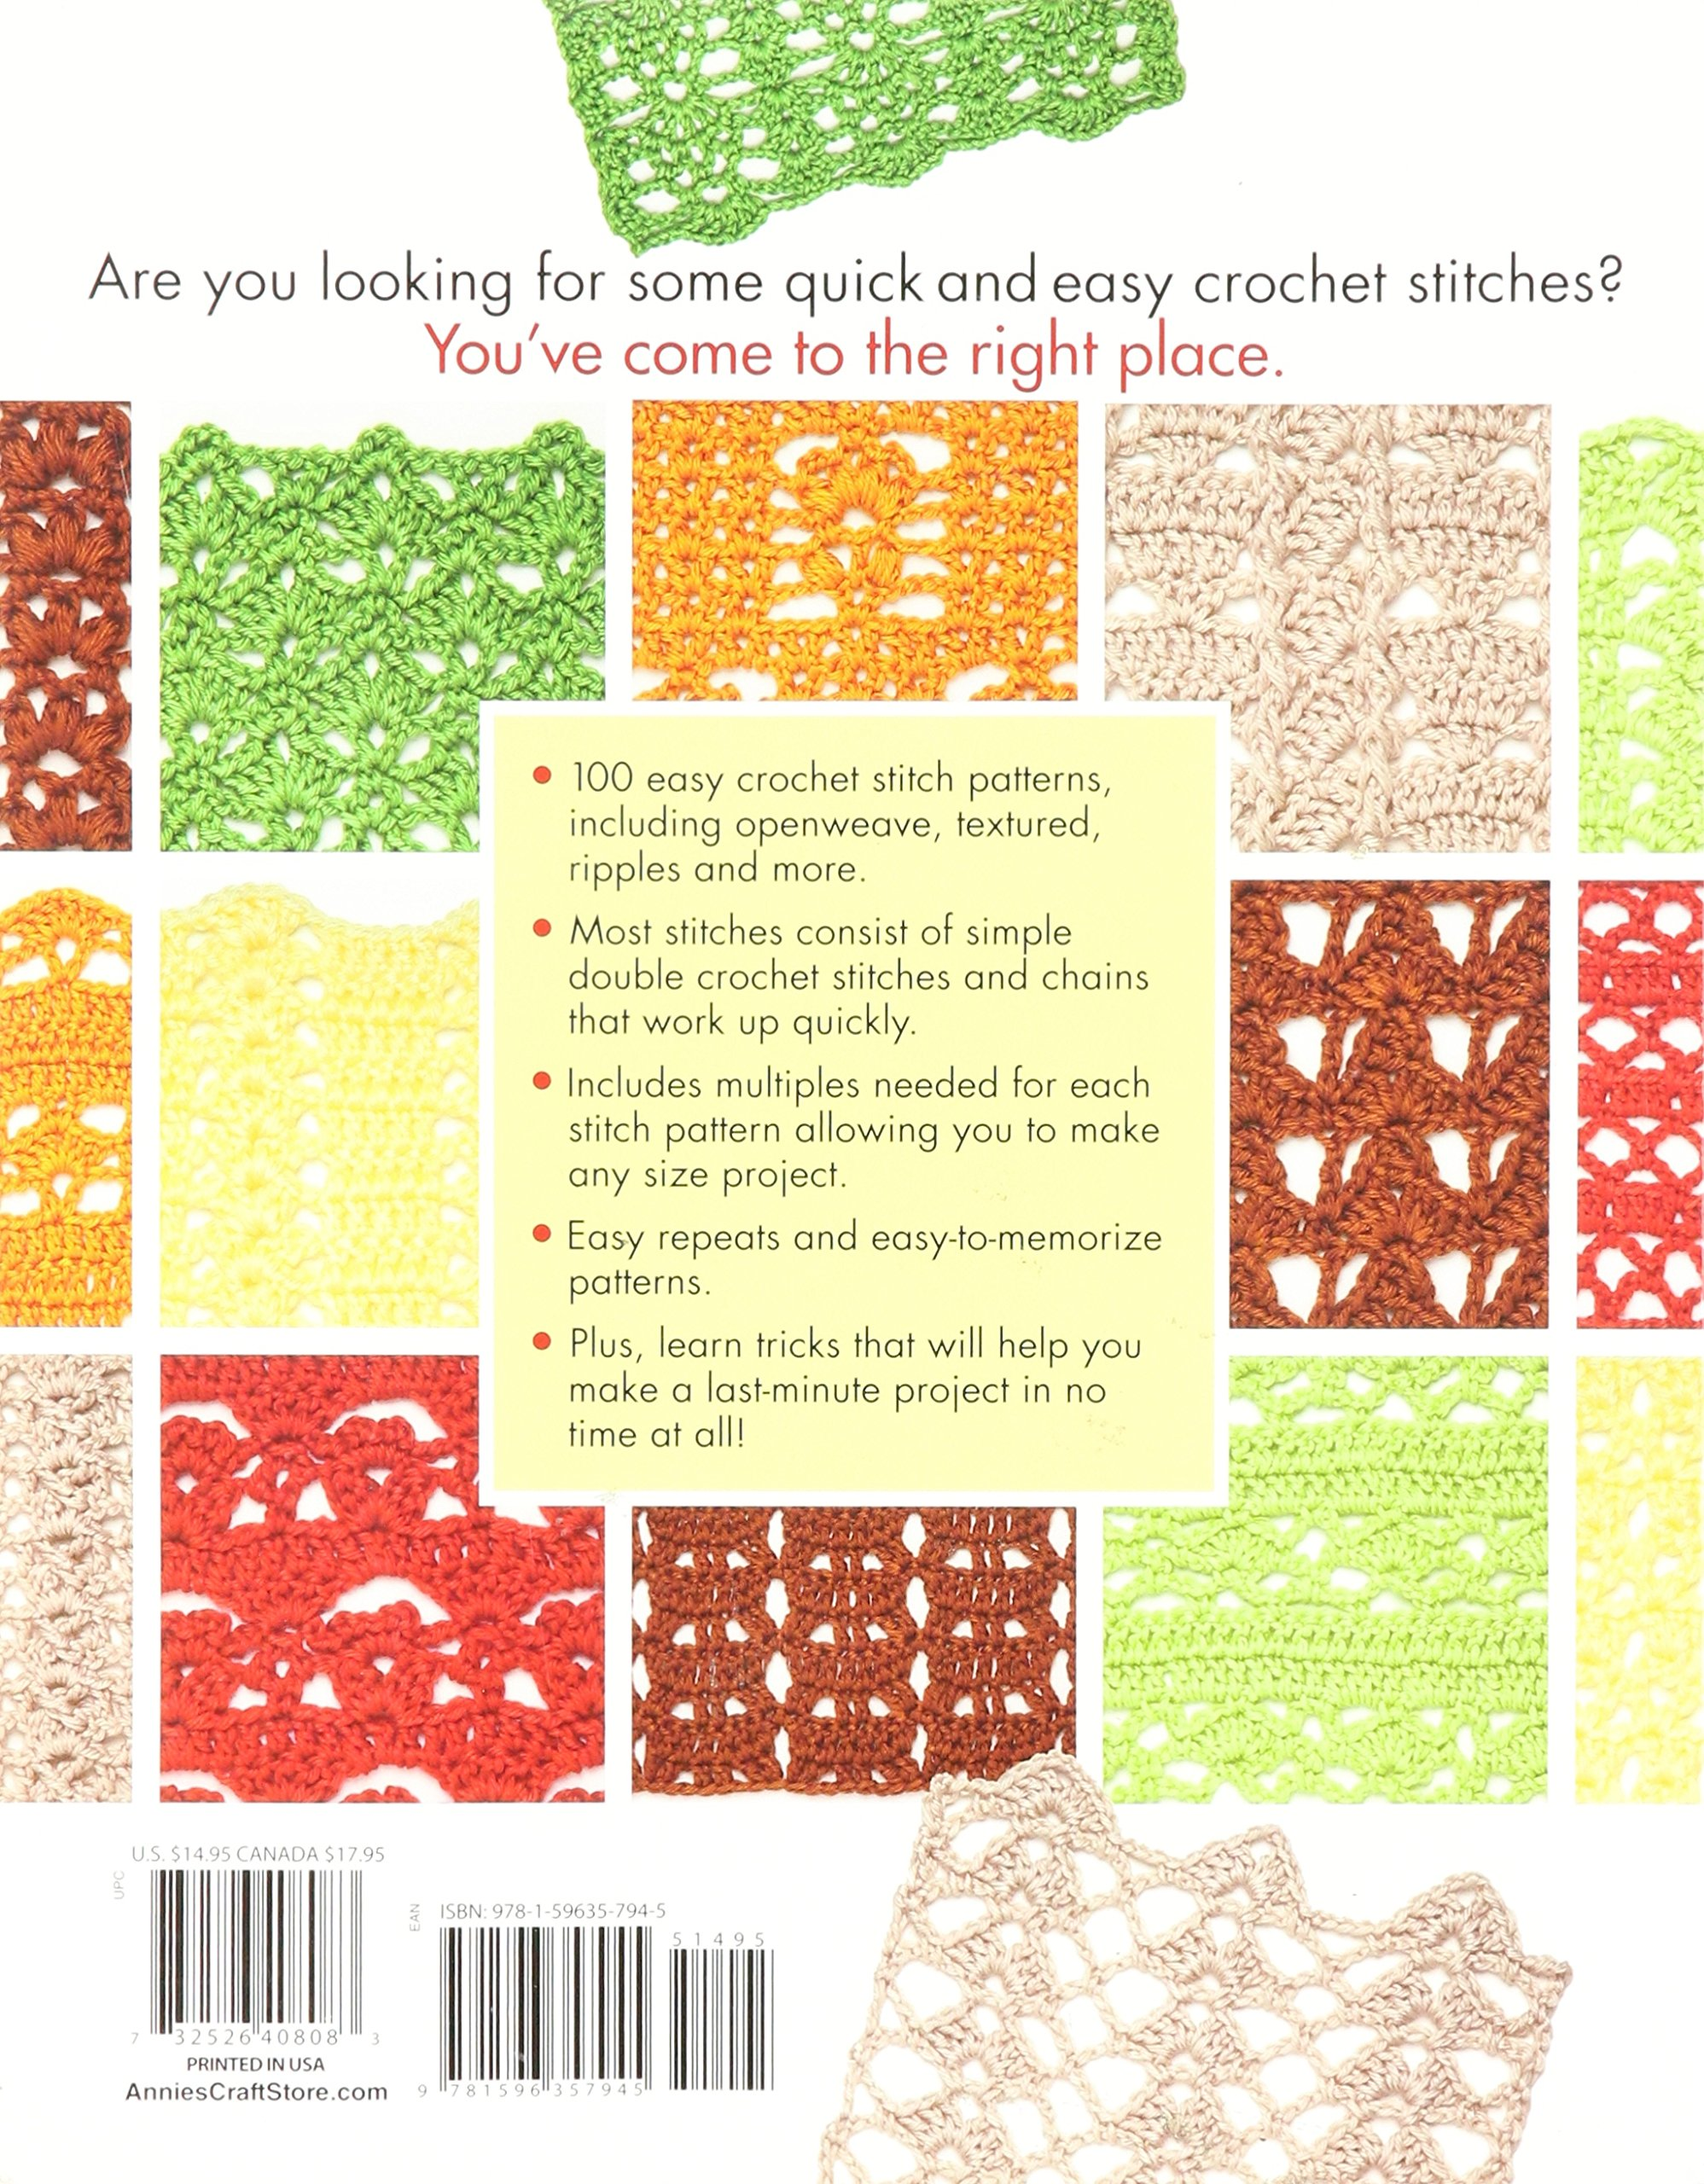 100 quick easy crochet stitches easy stitch patterns including 100 quick easy crochet stitches easy stitch patterns including openweave textured ripple and more annies crochet darla sims 9781596357945 fandeluxe Images